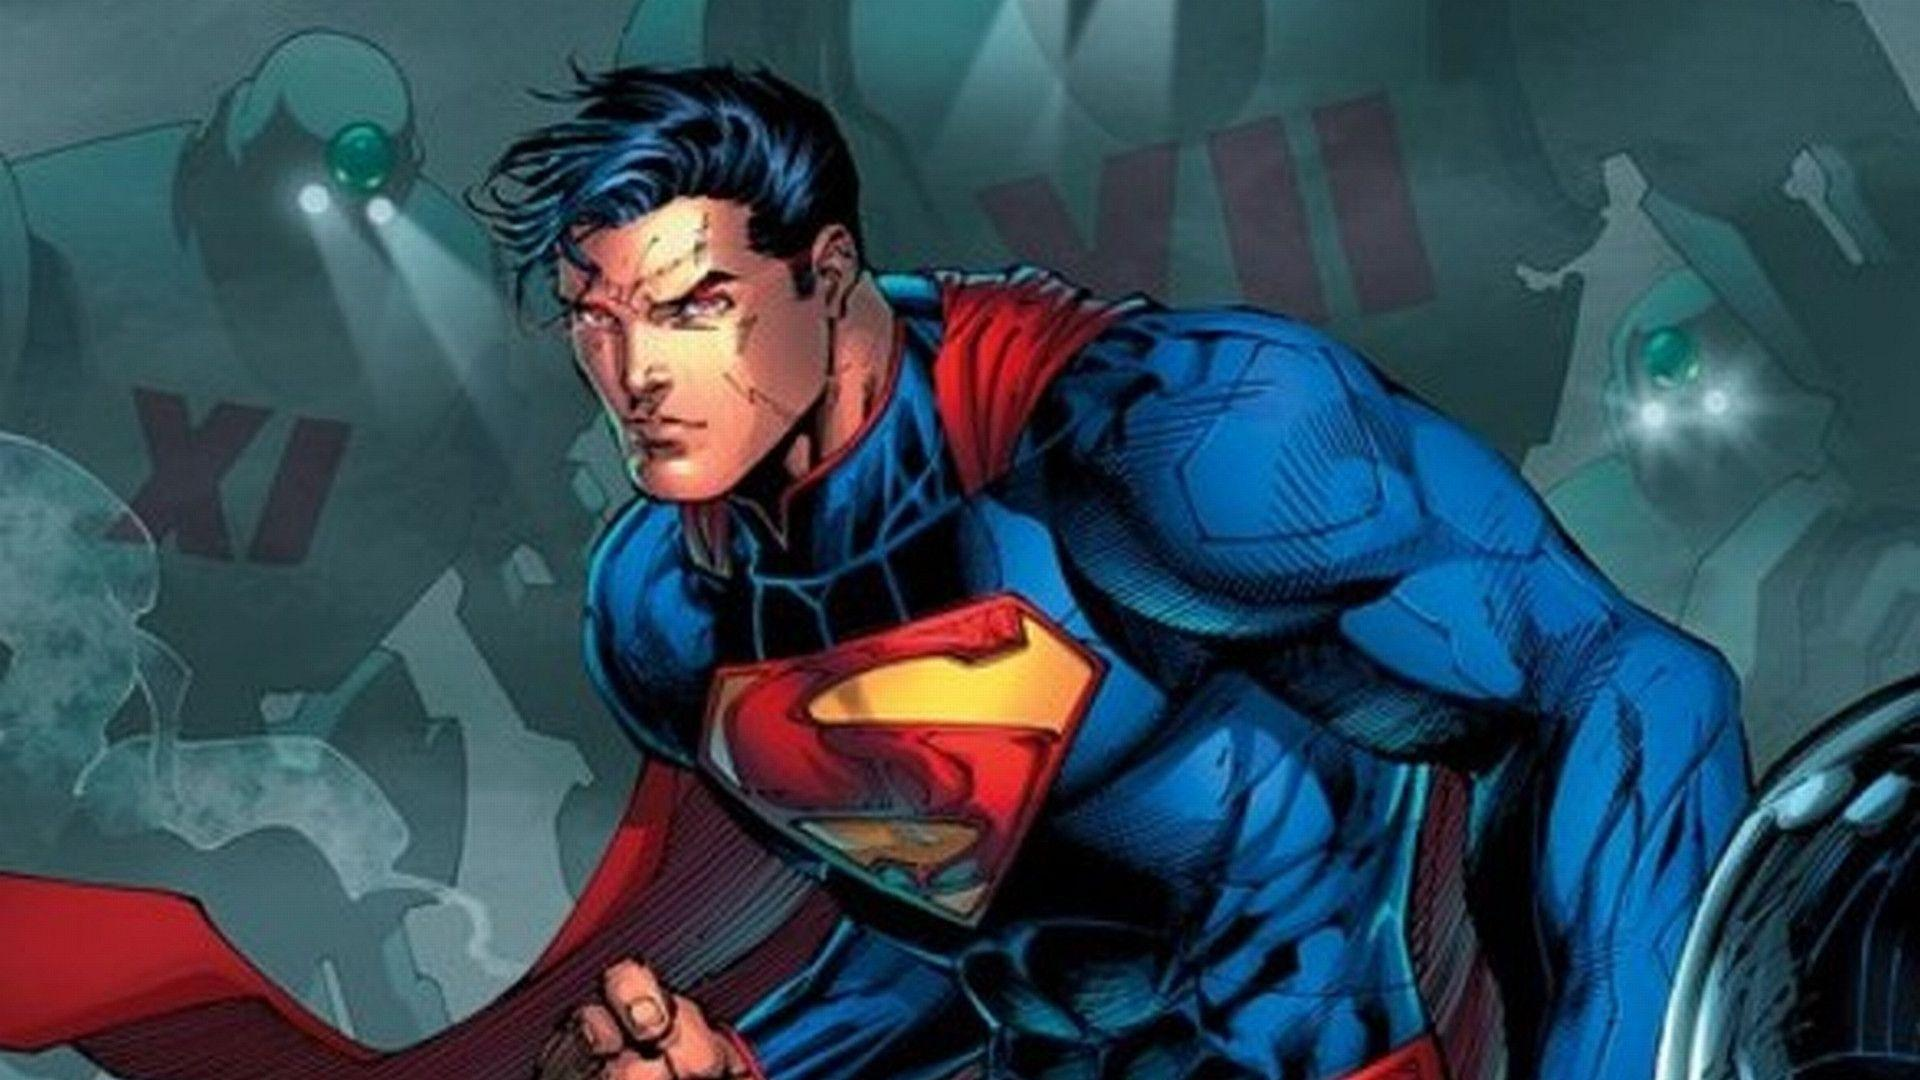 Superman Wallpaper HD For Android | Cartoons Images